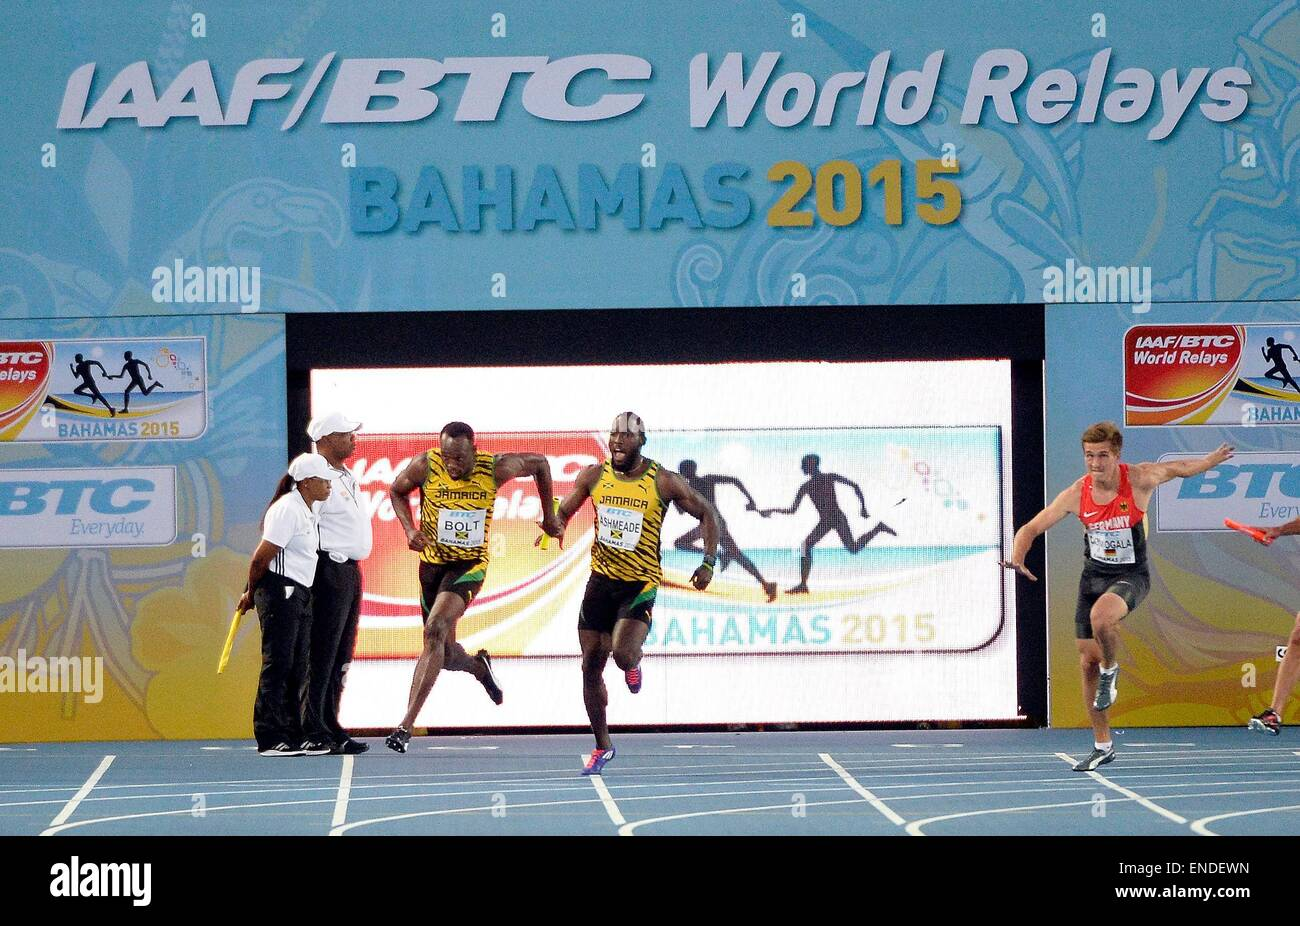 Nassau, Bahamas. 02nd May, 2015. IAAF World Relay championships. Ryan Bailey of Usa and Usain Bolt of Jamaica 4 - Stock Image